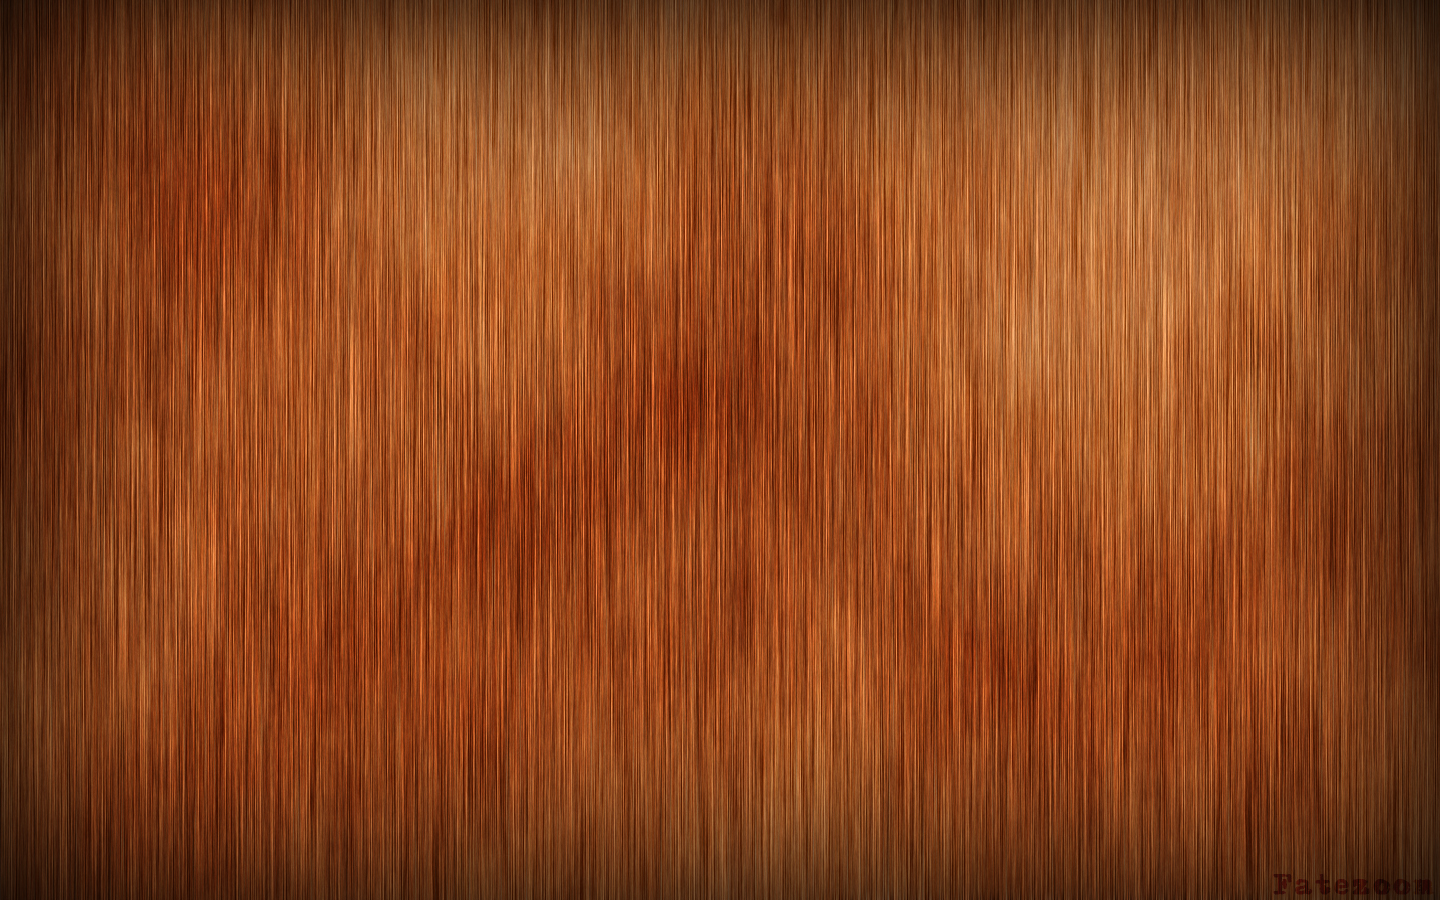 wood-texture-collection-for-dekstop-pc-http-hd-com-wood-texture-wallpaper-wpc90010767